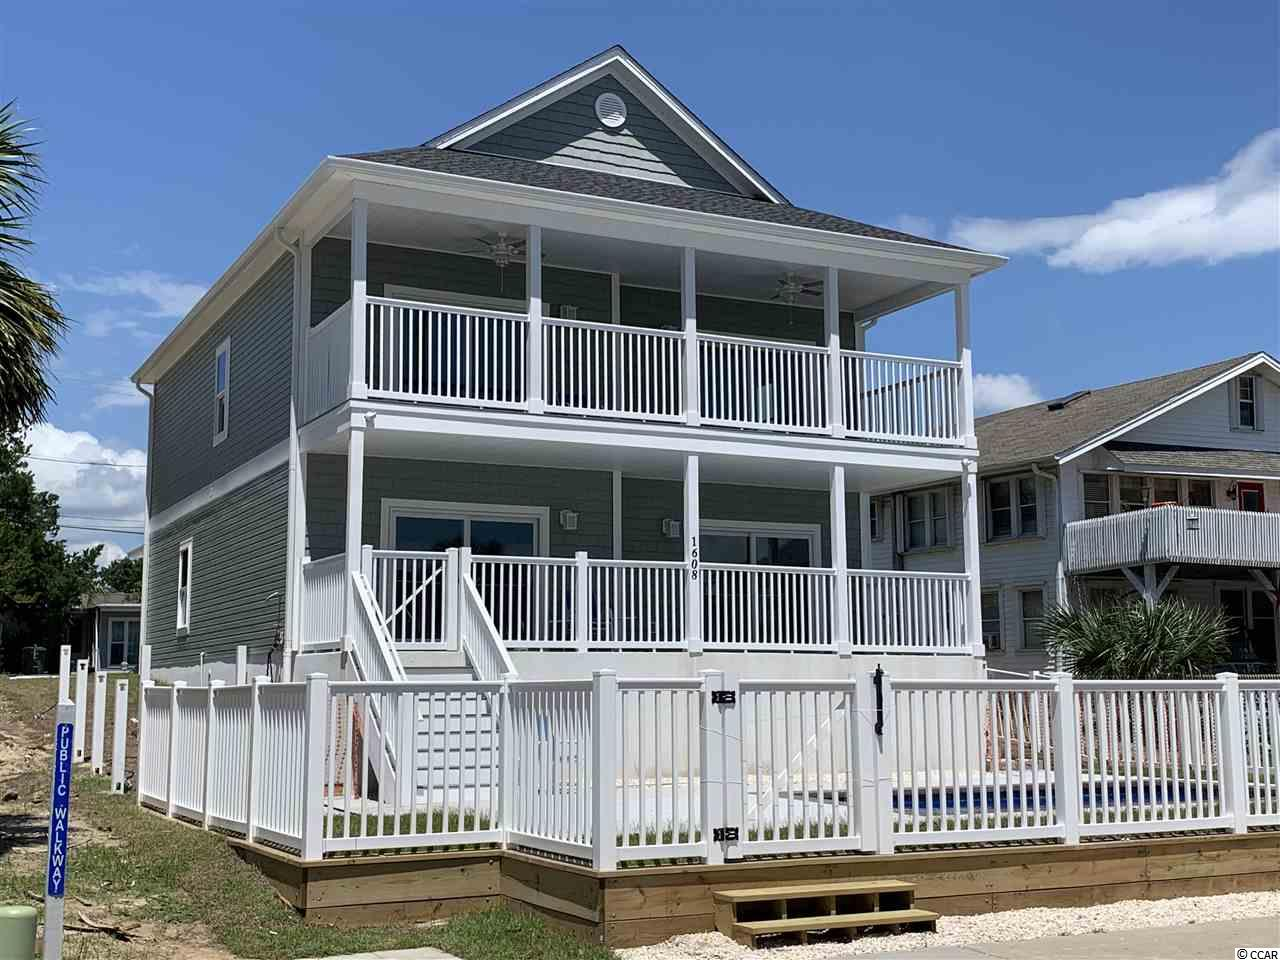 RARE OPPORTUNITY !!!!  THIS NEW CONSTRUCTION 5 BEDROOM 4 BATHROOM 2ND ROW HOME HAS SPECTACULAR VIEWS OF THE OCEAN FROM BOTH FLOORS AND THE POOL AREA. PUBLIC ACCESS TO BEACH DIRECTLY ACROSS THE STREET. TWO LIVING ROOMS ONE ON EACH FLOOR WITH A WET BAR IN FIRST FLOOR LIVING ROOM WITH CONVENIENT ACCESS TO POOL AREA. AMPLE PARKING IN BACK OF THE HOUSE AND A SINGLE CAR GARAGE. WALKING DISTANCE TO OCEAN FRONT RESTAURANT/BAR AND TO A CONVENIENCE STORE. SHORT GOLF CART RIDE TO MAIN STREET WHICH BOAST MANY RESTAURANTS, SHOPPING, ENTERTAINMENT AND NIGHT LIFE. THIS HOME IS DUE TO BE COMLETE IN JULY 2020